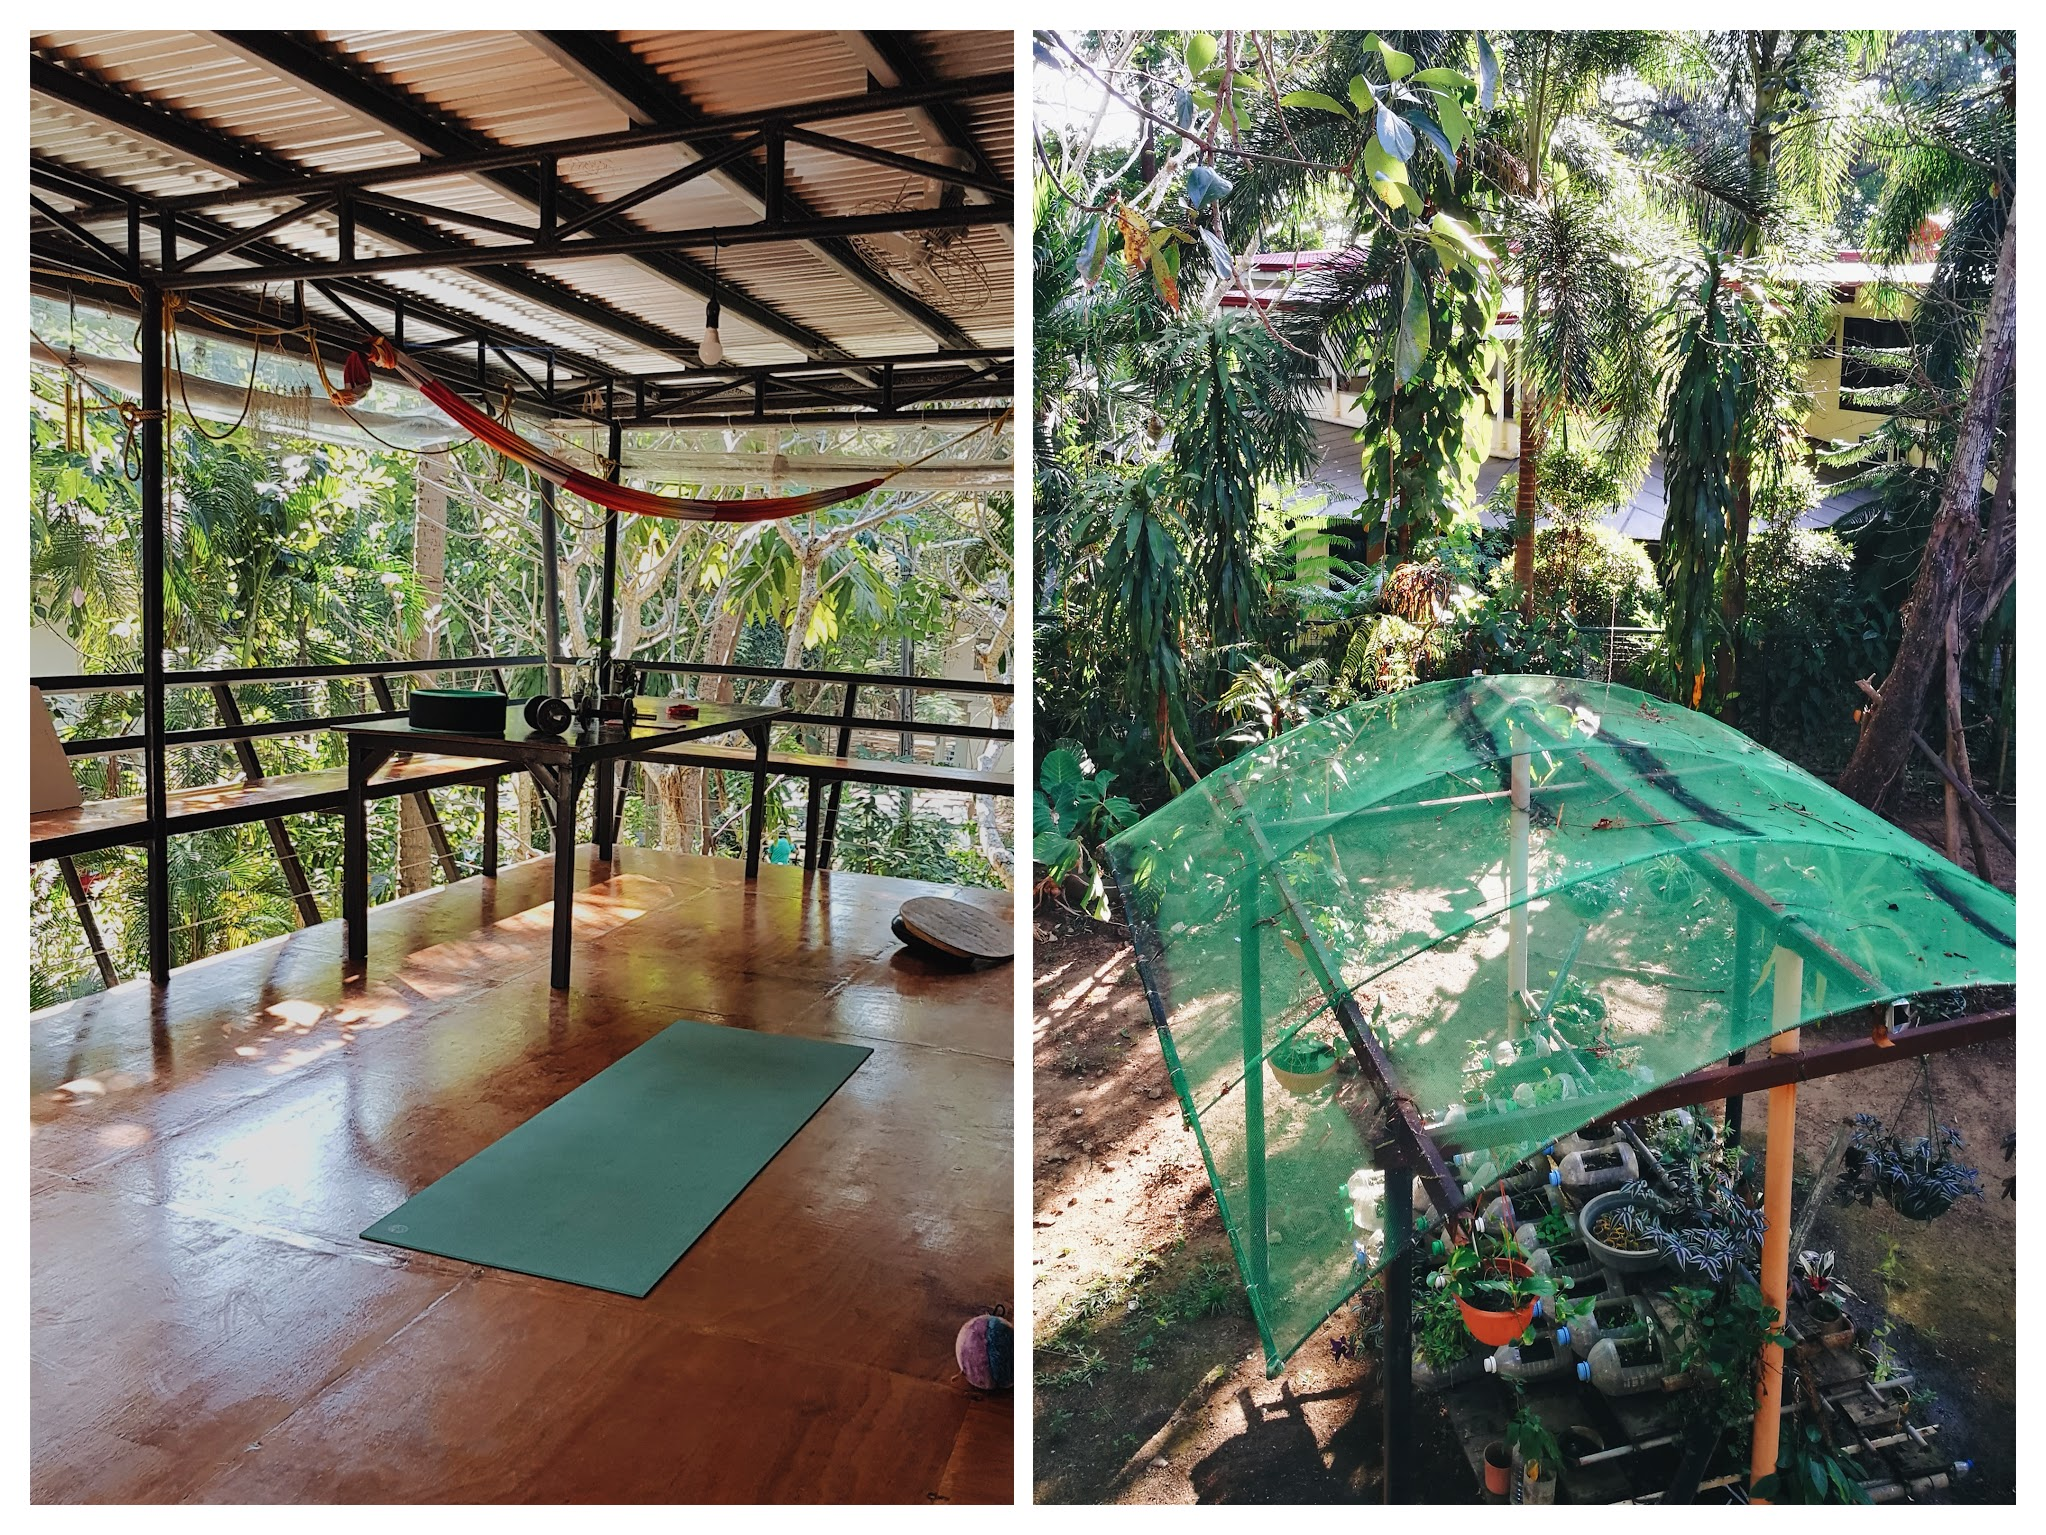 Airbnb Review: Subic Rainforest Retreat - on left: a spacious balcony good for yoga sessions. on right: small garden and compost | www.wearejuanderers.com